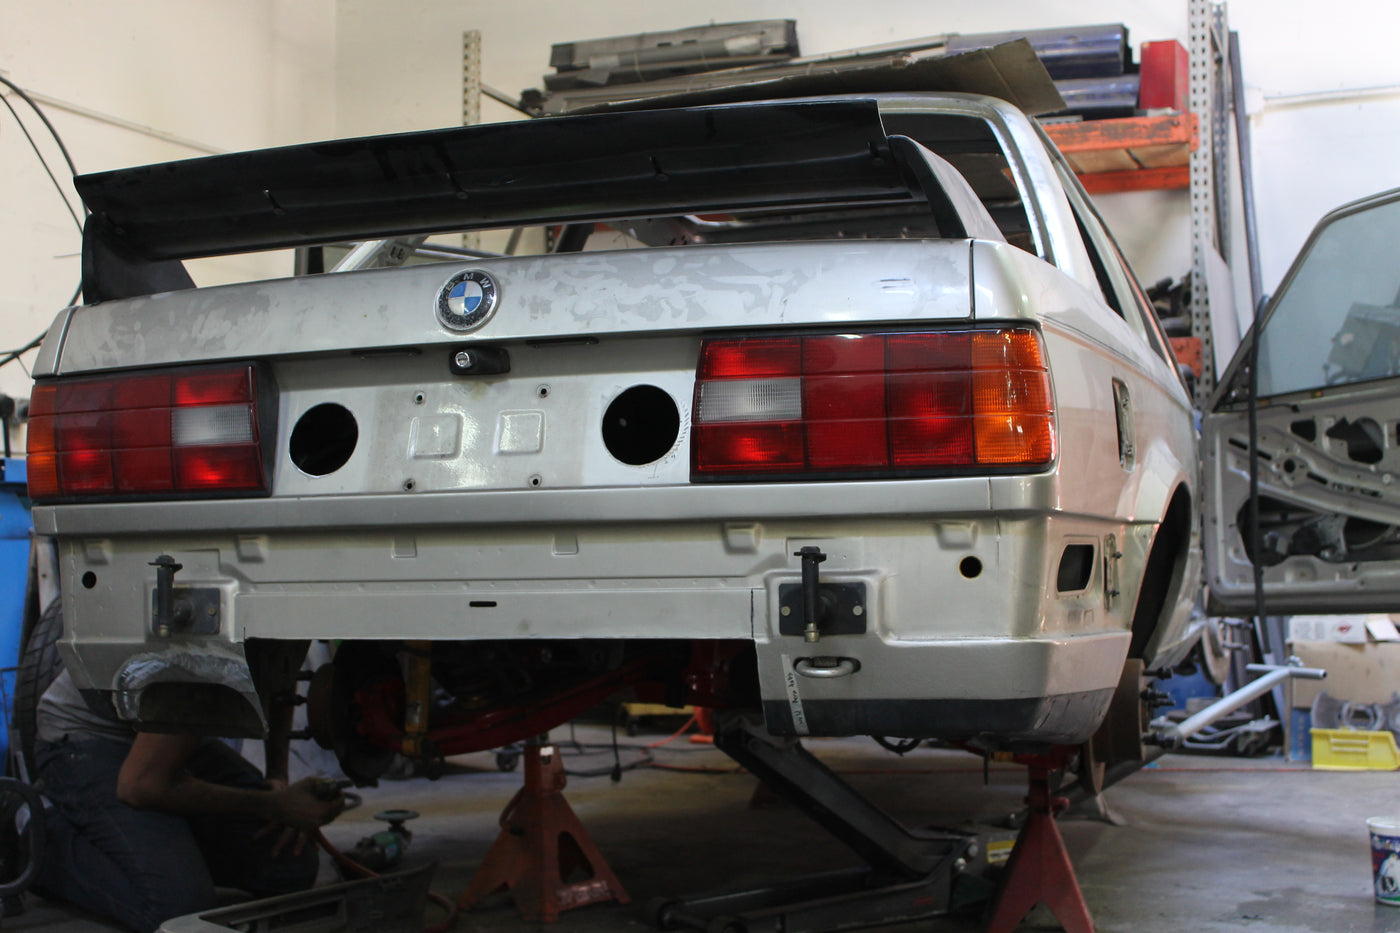 Project Ares - E30 diffuser system and spare wheel well delete